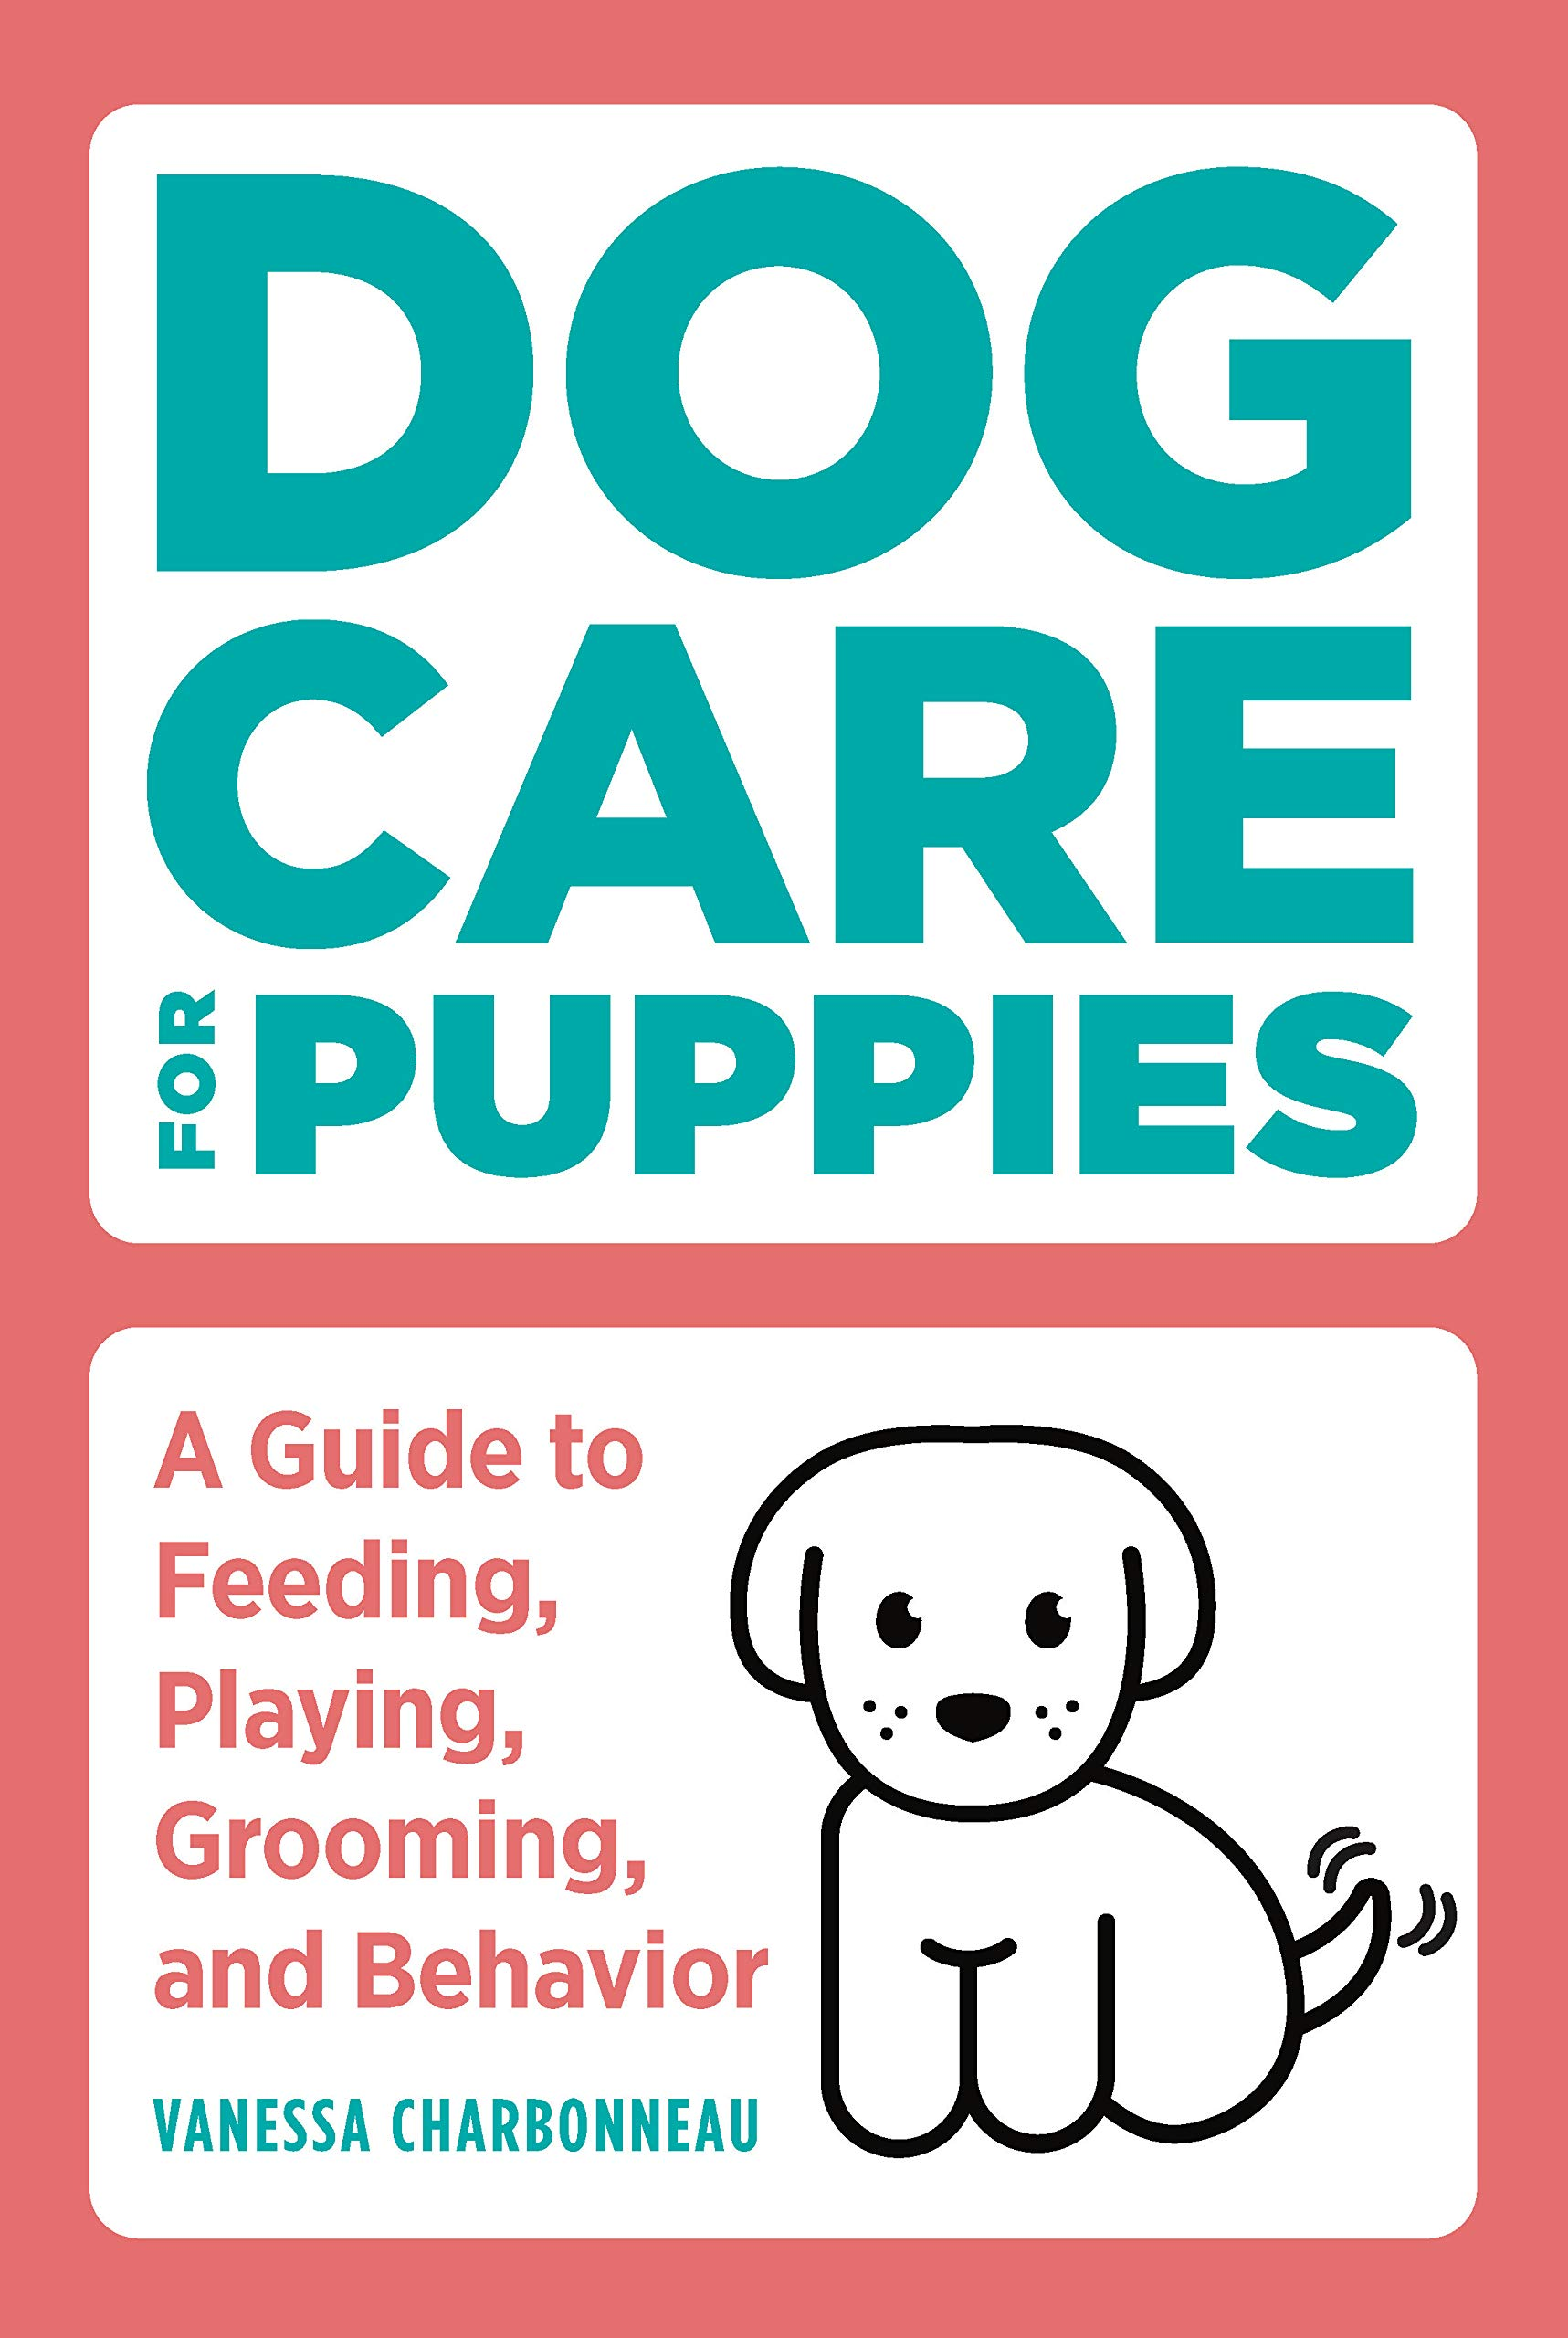 Dog Care for Puppies: A Guide to Feeding, Playing, Grooming, and Behavior